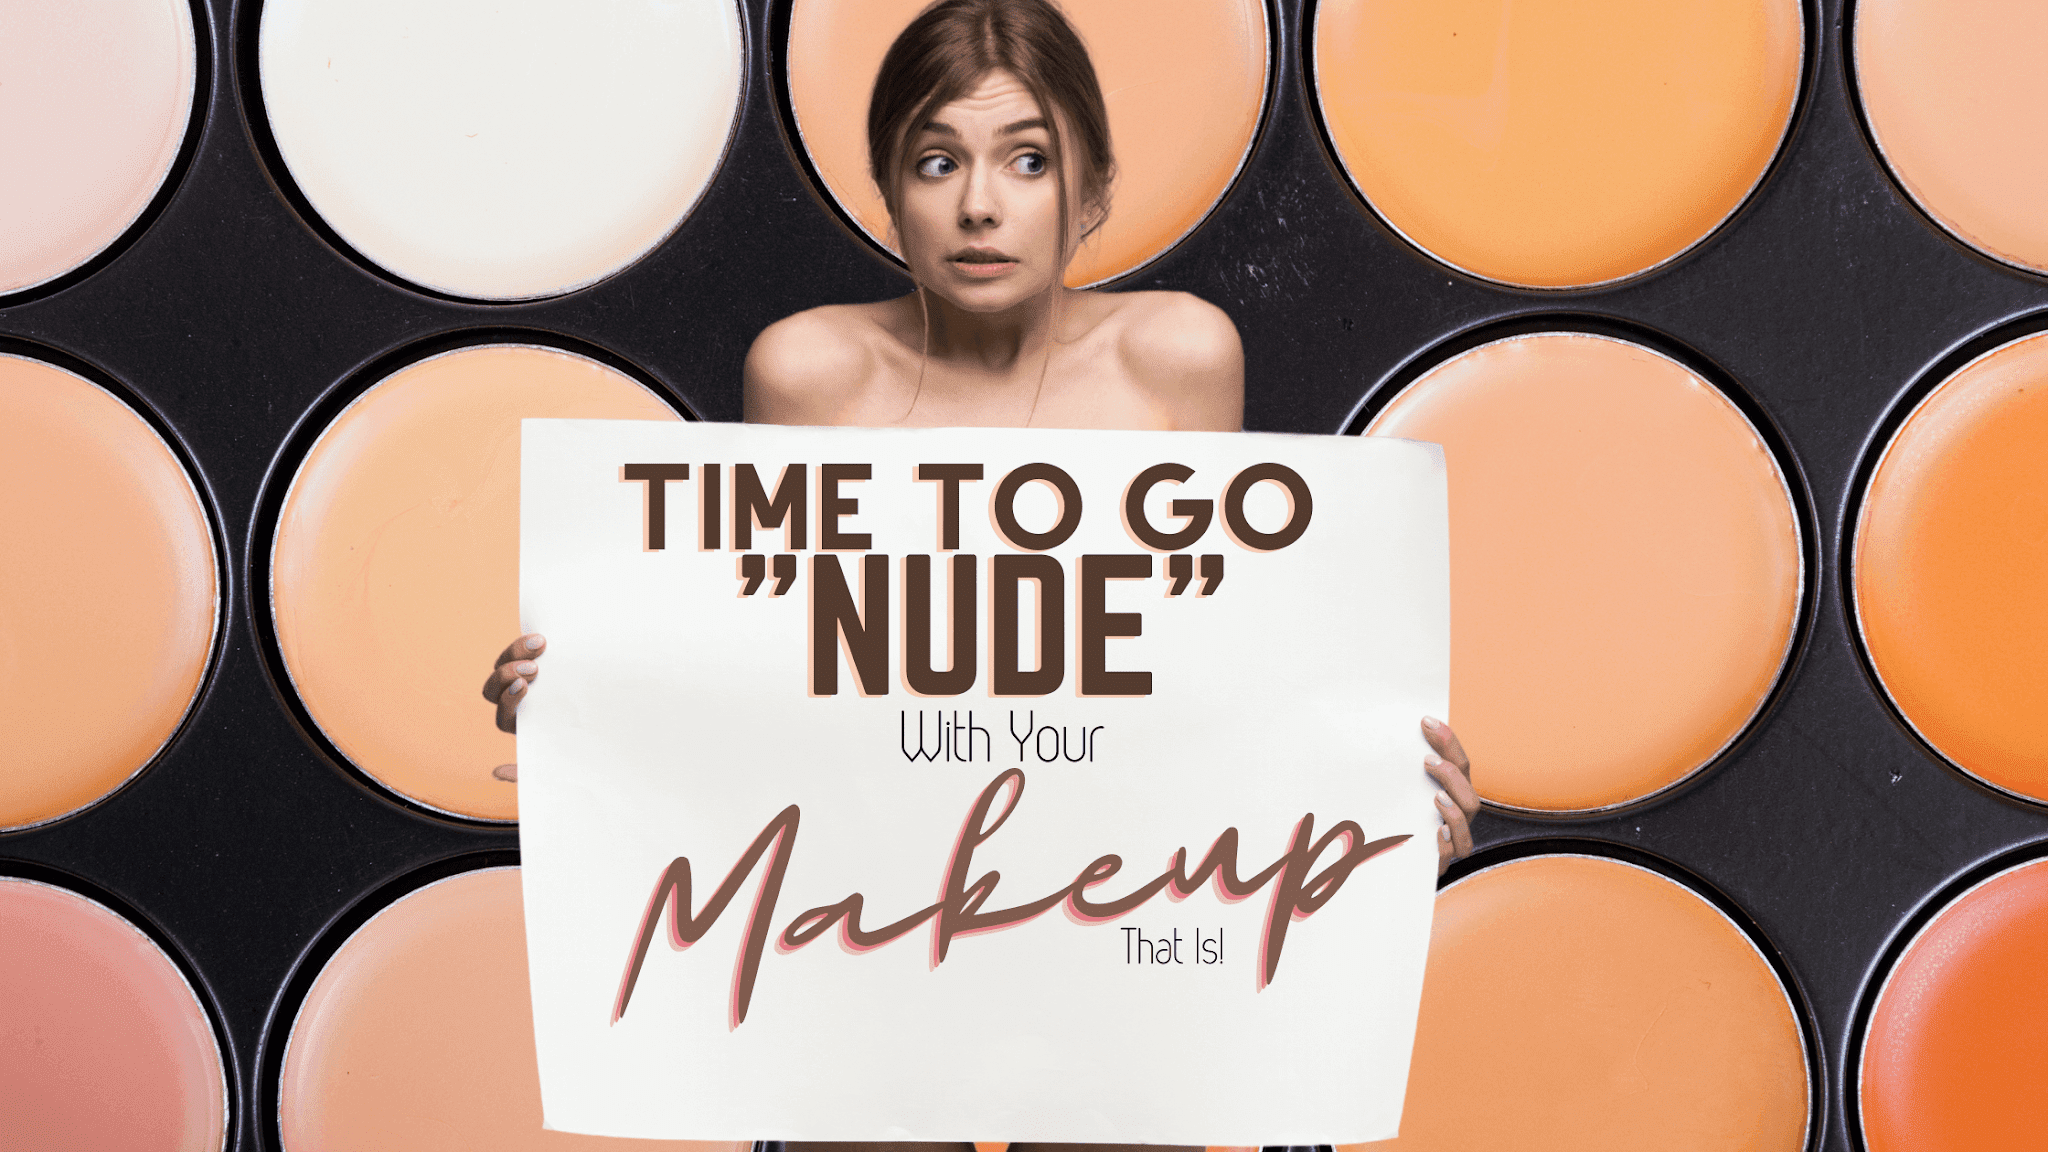 Let's Go Nude, With Your Makeup That is By Barbies Beauty Bits